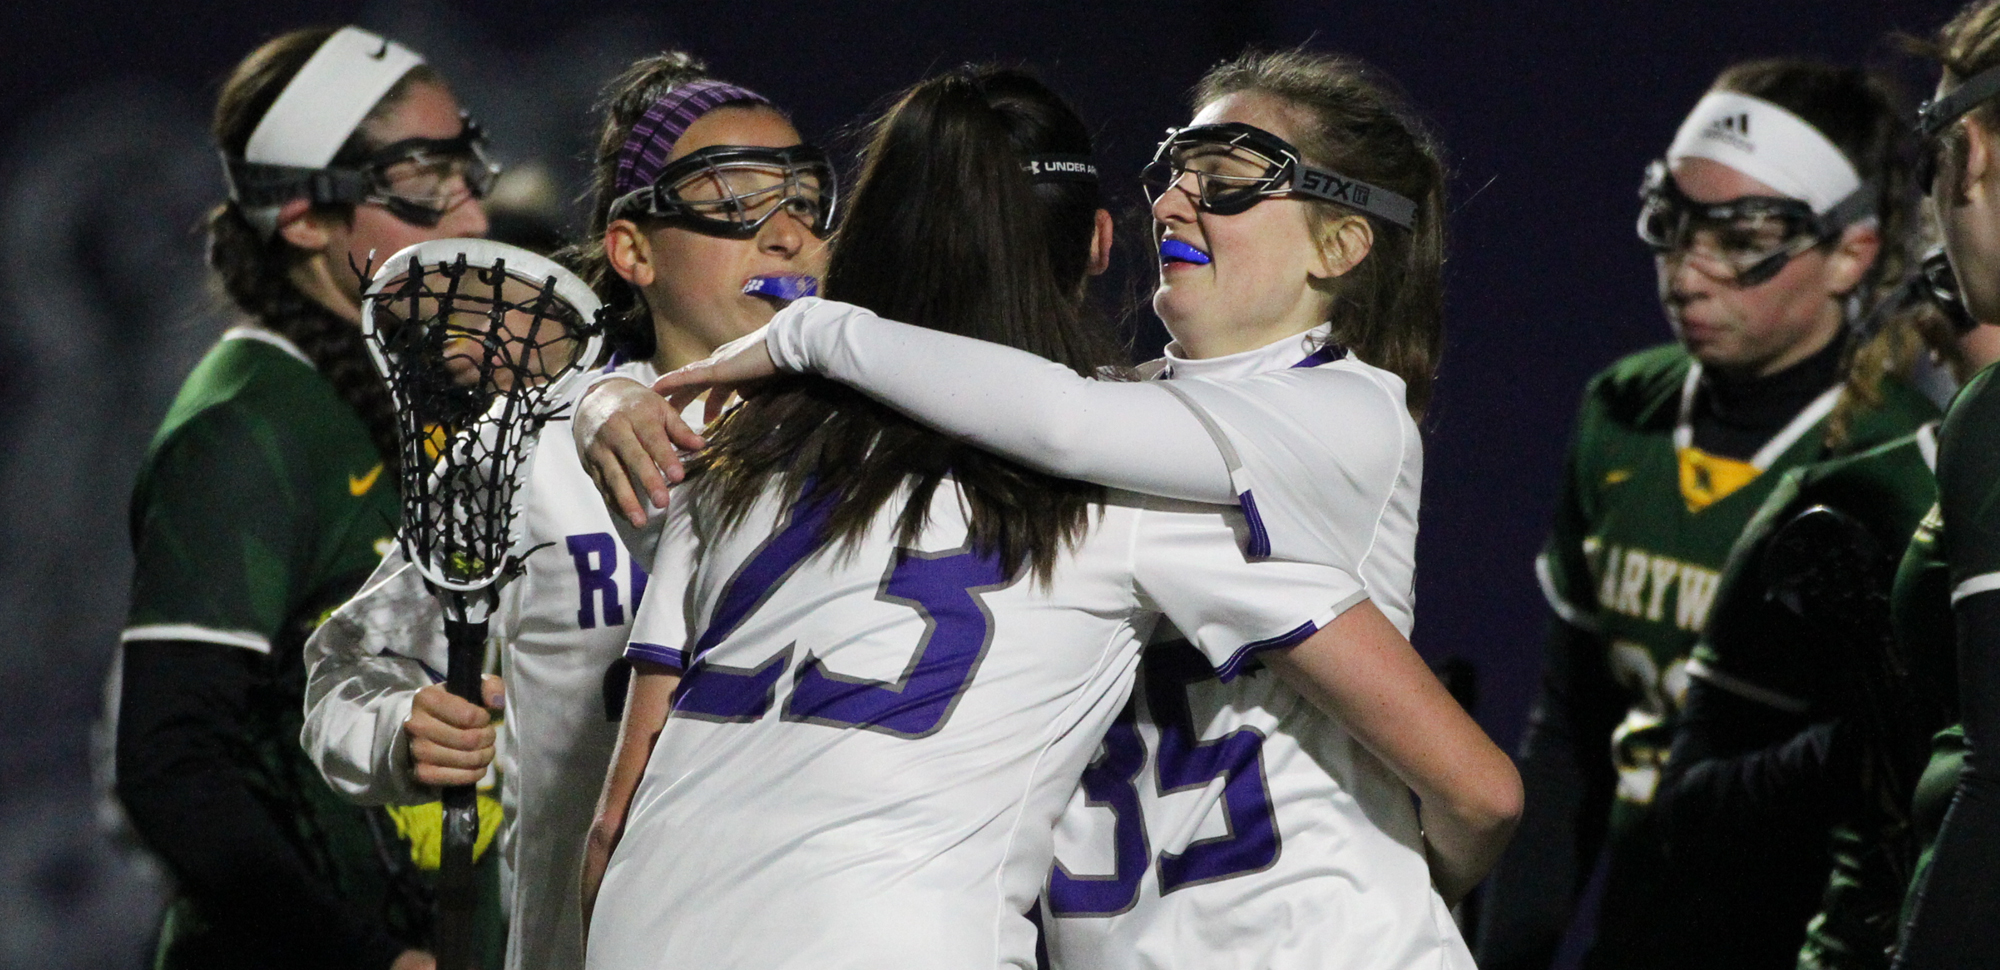 Women's Lacrosse Program To Hold ID Clinic in October